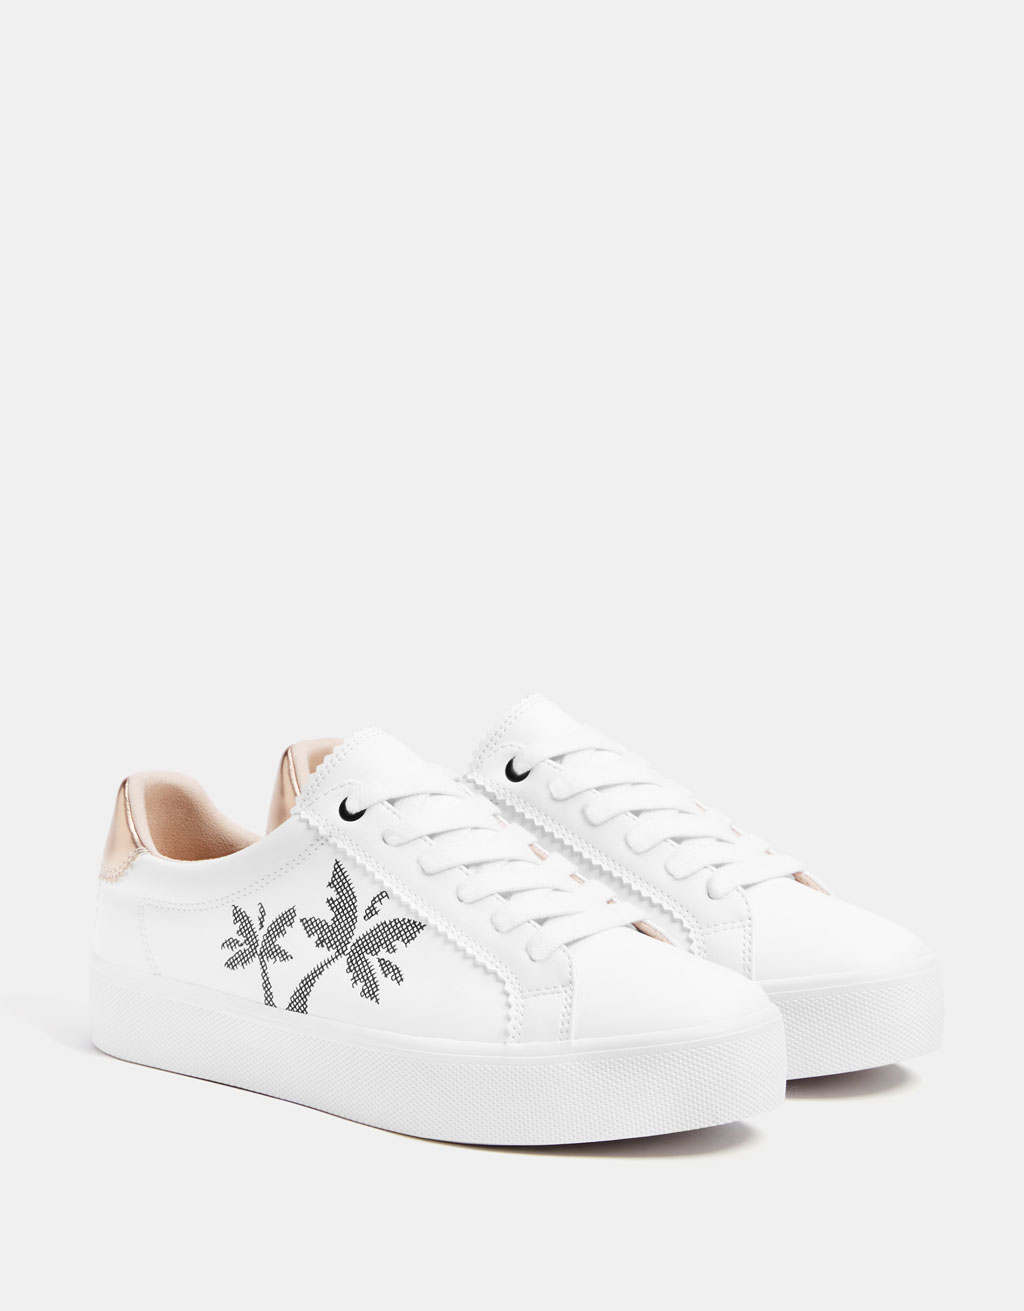 Sneakers with embroidered palm trees